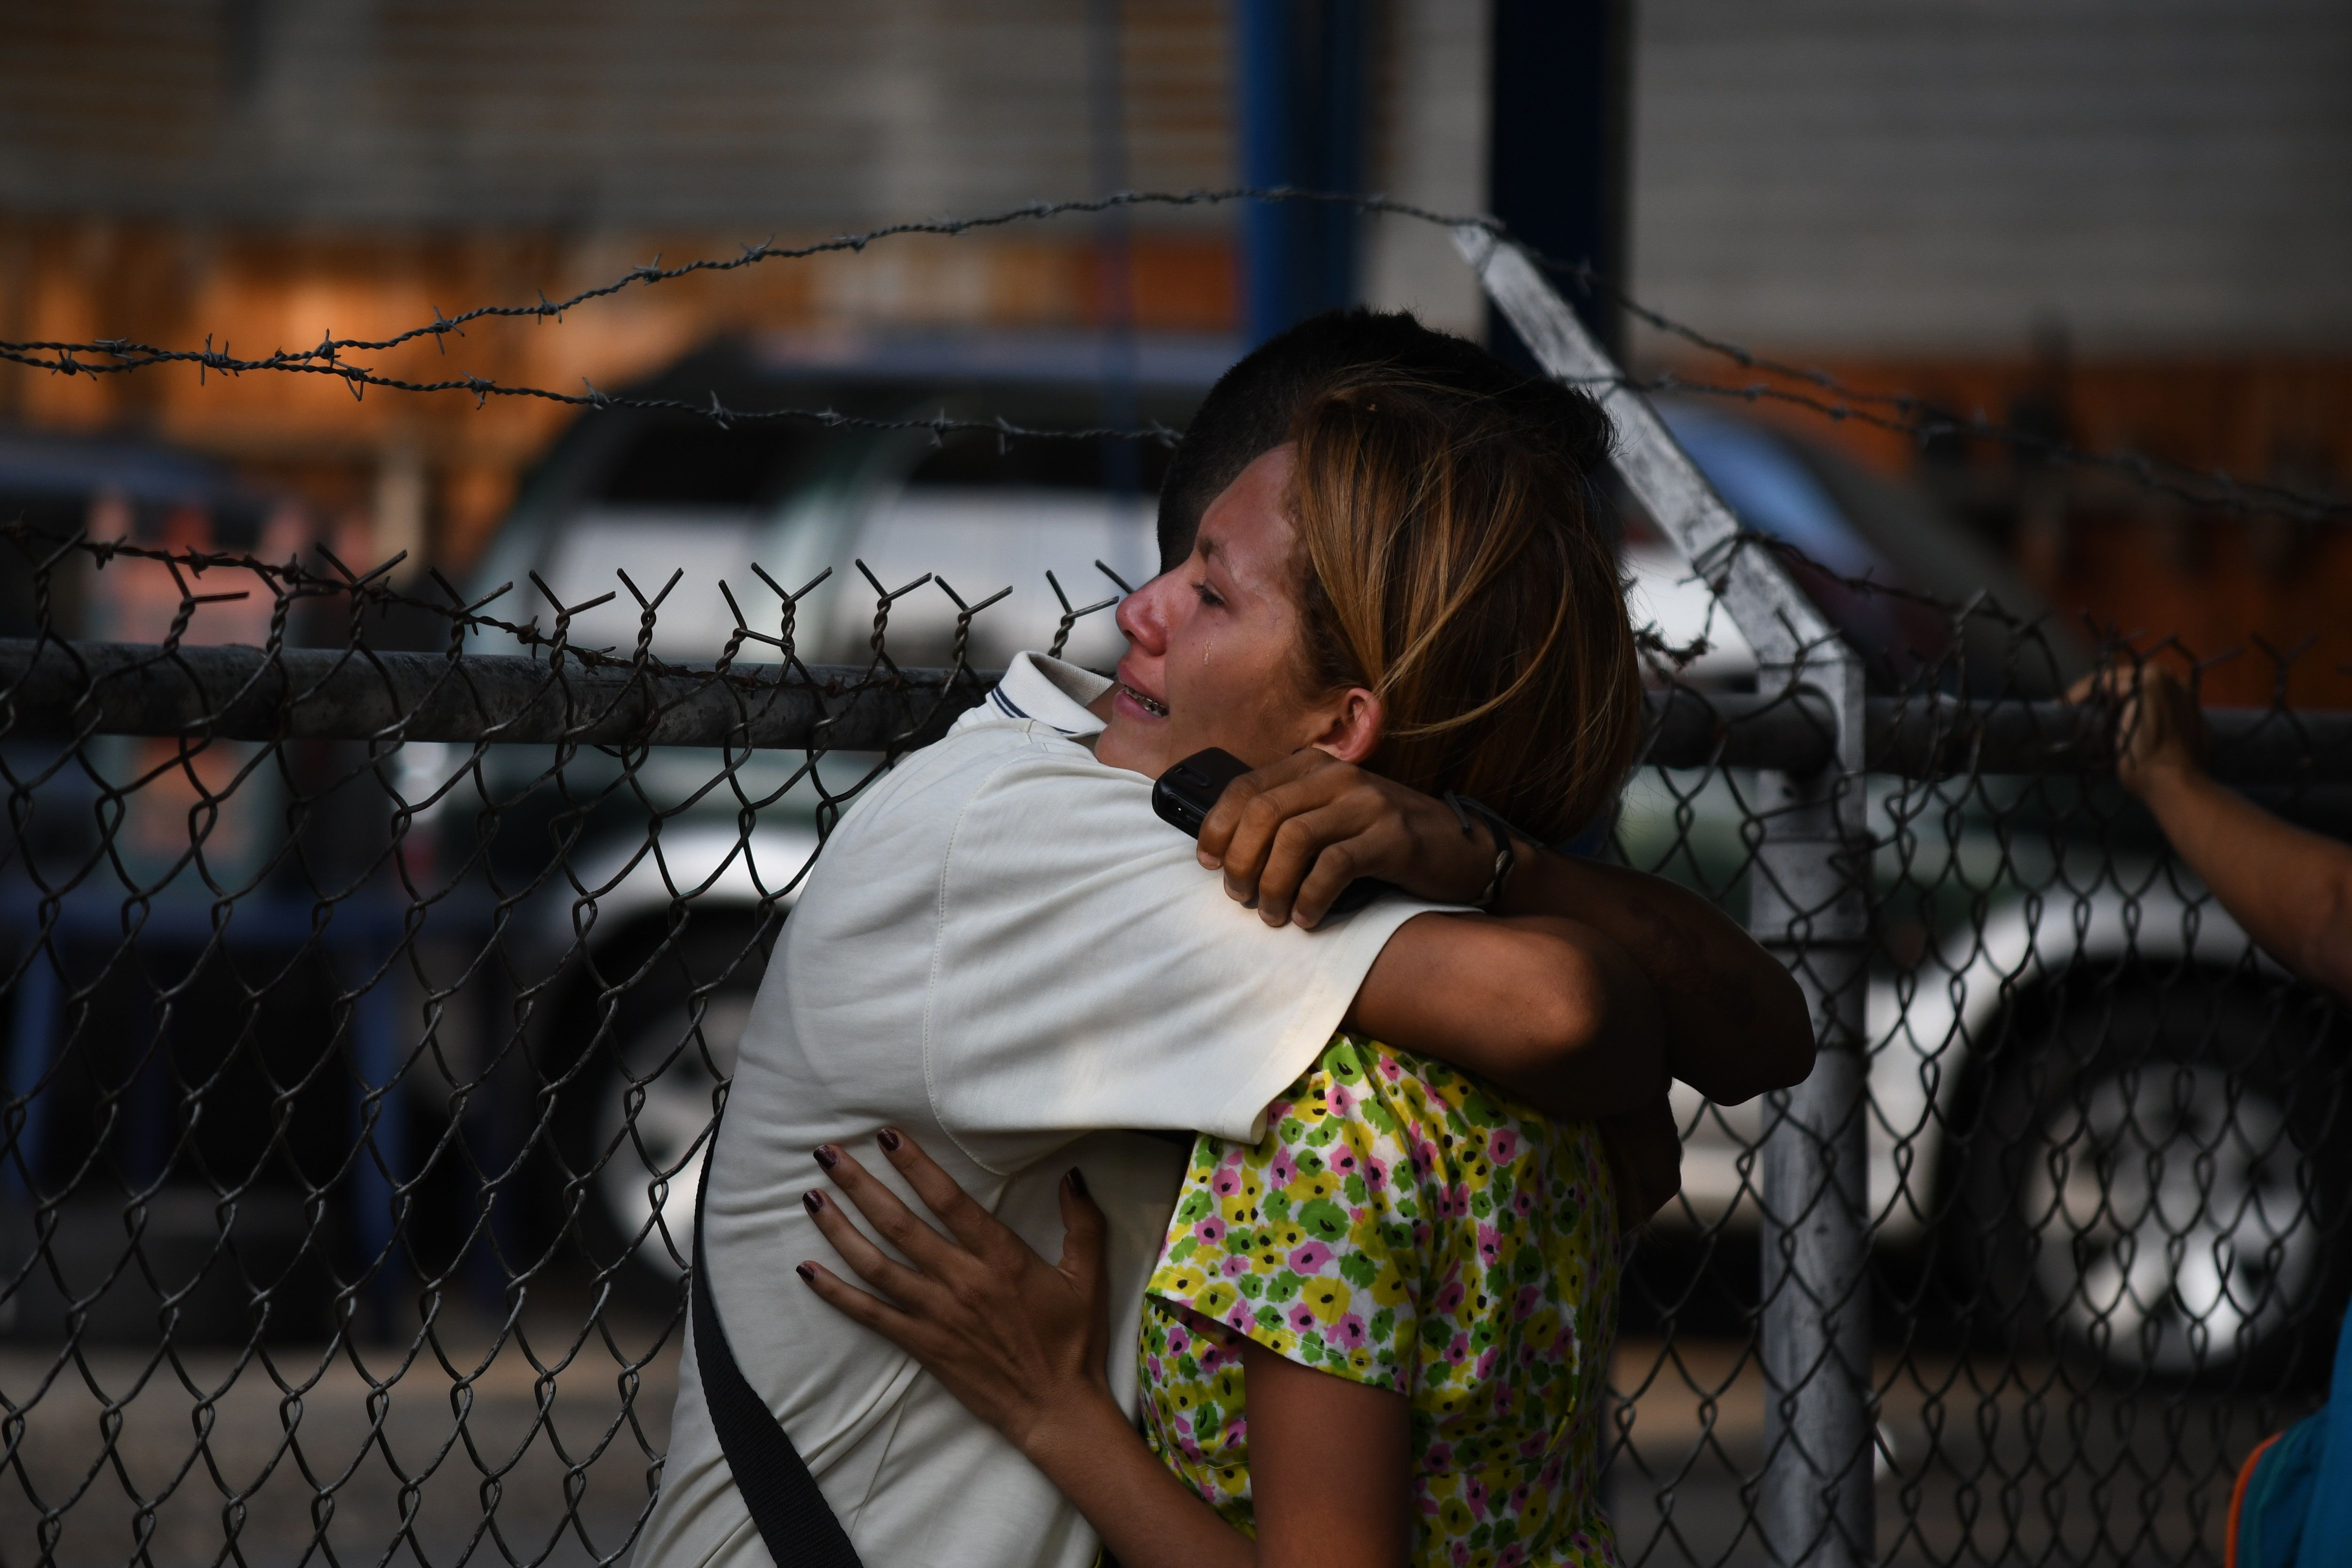 VALENCIA, CARABOBO, VENEZUELA - 2018/03/28: Relatives of detainees seen comforting each other by hugging. Relatives of detainees in the police headquarters of Carabobo, in the city of Valencia in Carabobo state, remain outside the police station waiting to find out if their detained relatives is still alive. A fire inside the cells of the police station taken the lives of 66 detainees and 2 women who were visiting. Family members alleged that the police burned them alive inside the cells after a fight with them. Relatives also reported that police sells weapons inside the prison and charge money for visiting. For more than 20 hours the national government has not release statements and the list of victims. (Photo by Roman Camacho/SOPA Images/LightRocket via Getty Images)